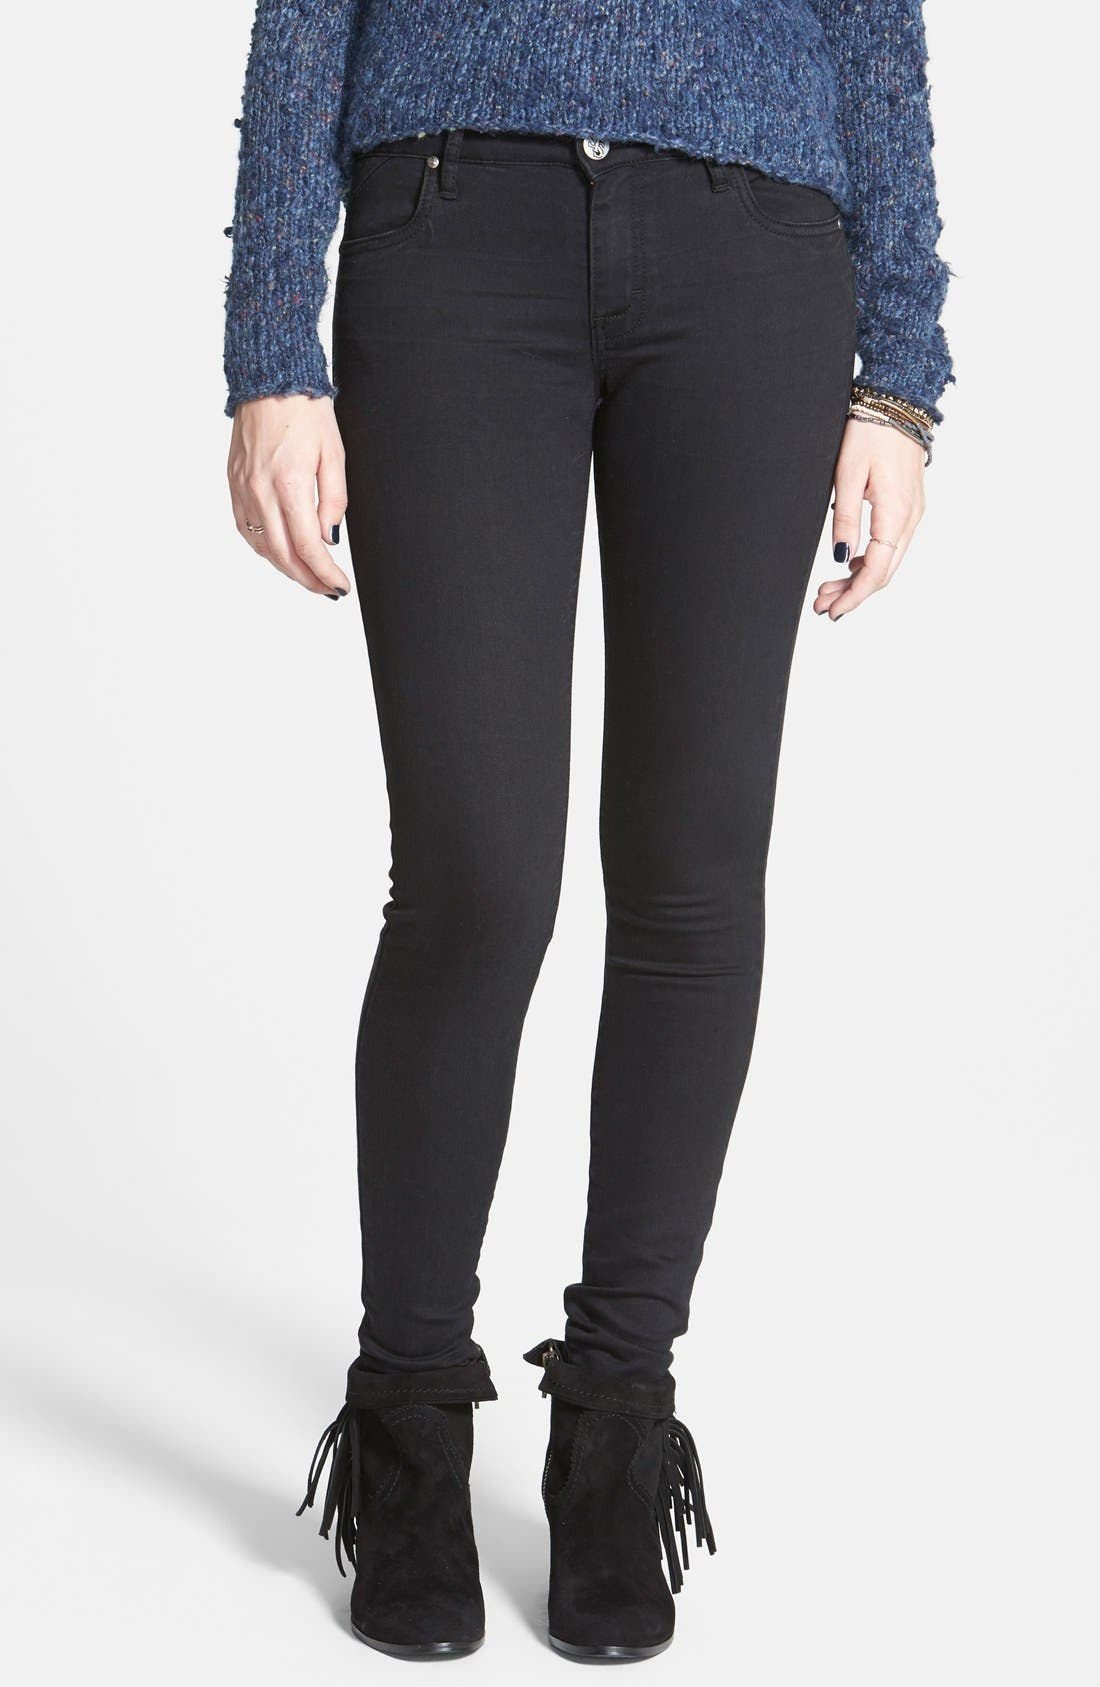 Alternate Image 1 Selected - STS Blue Stretch Skinny Jeans (Black)